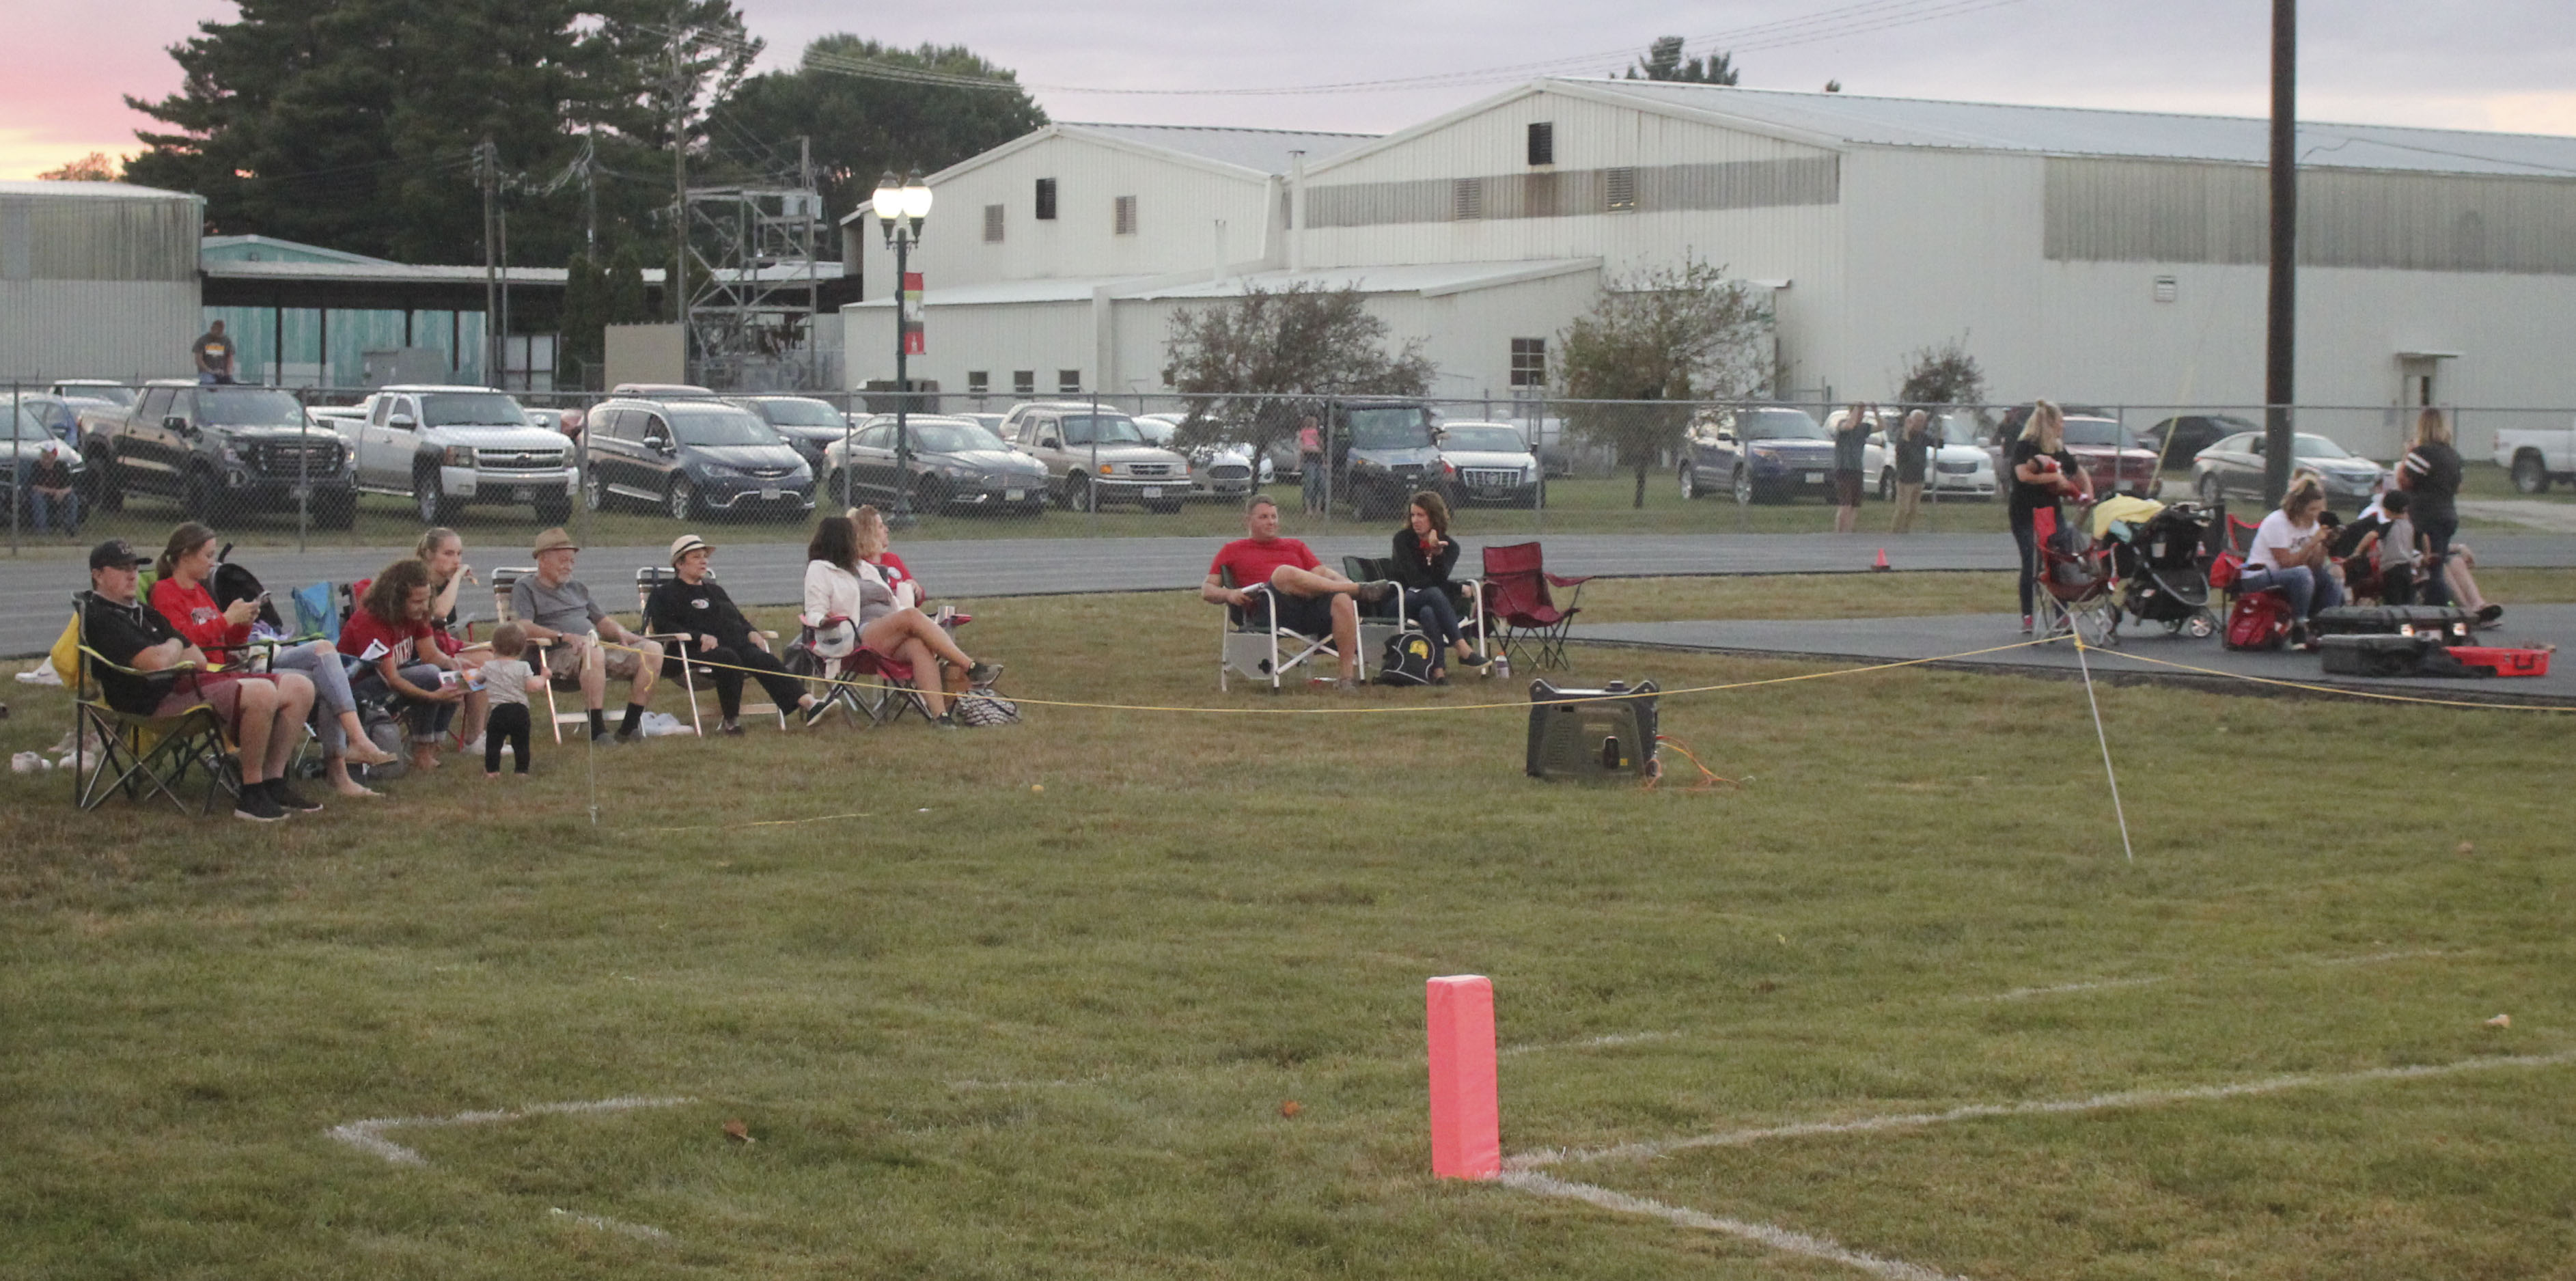 New this year for fans of Panther home football games is the option of bringing bag chairs and sitting beyond the end zones. It is part of an effort to encourage social distancing during the games.